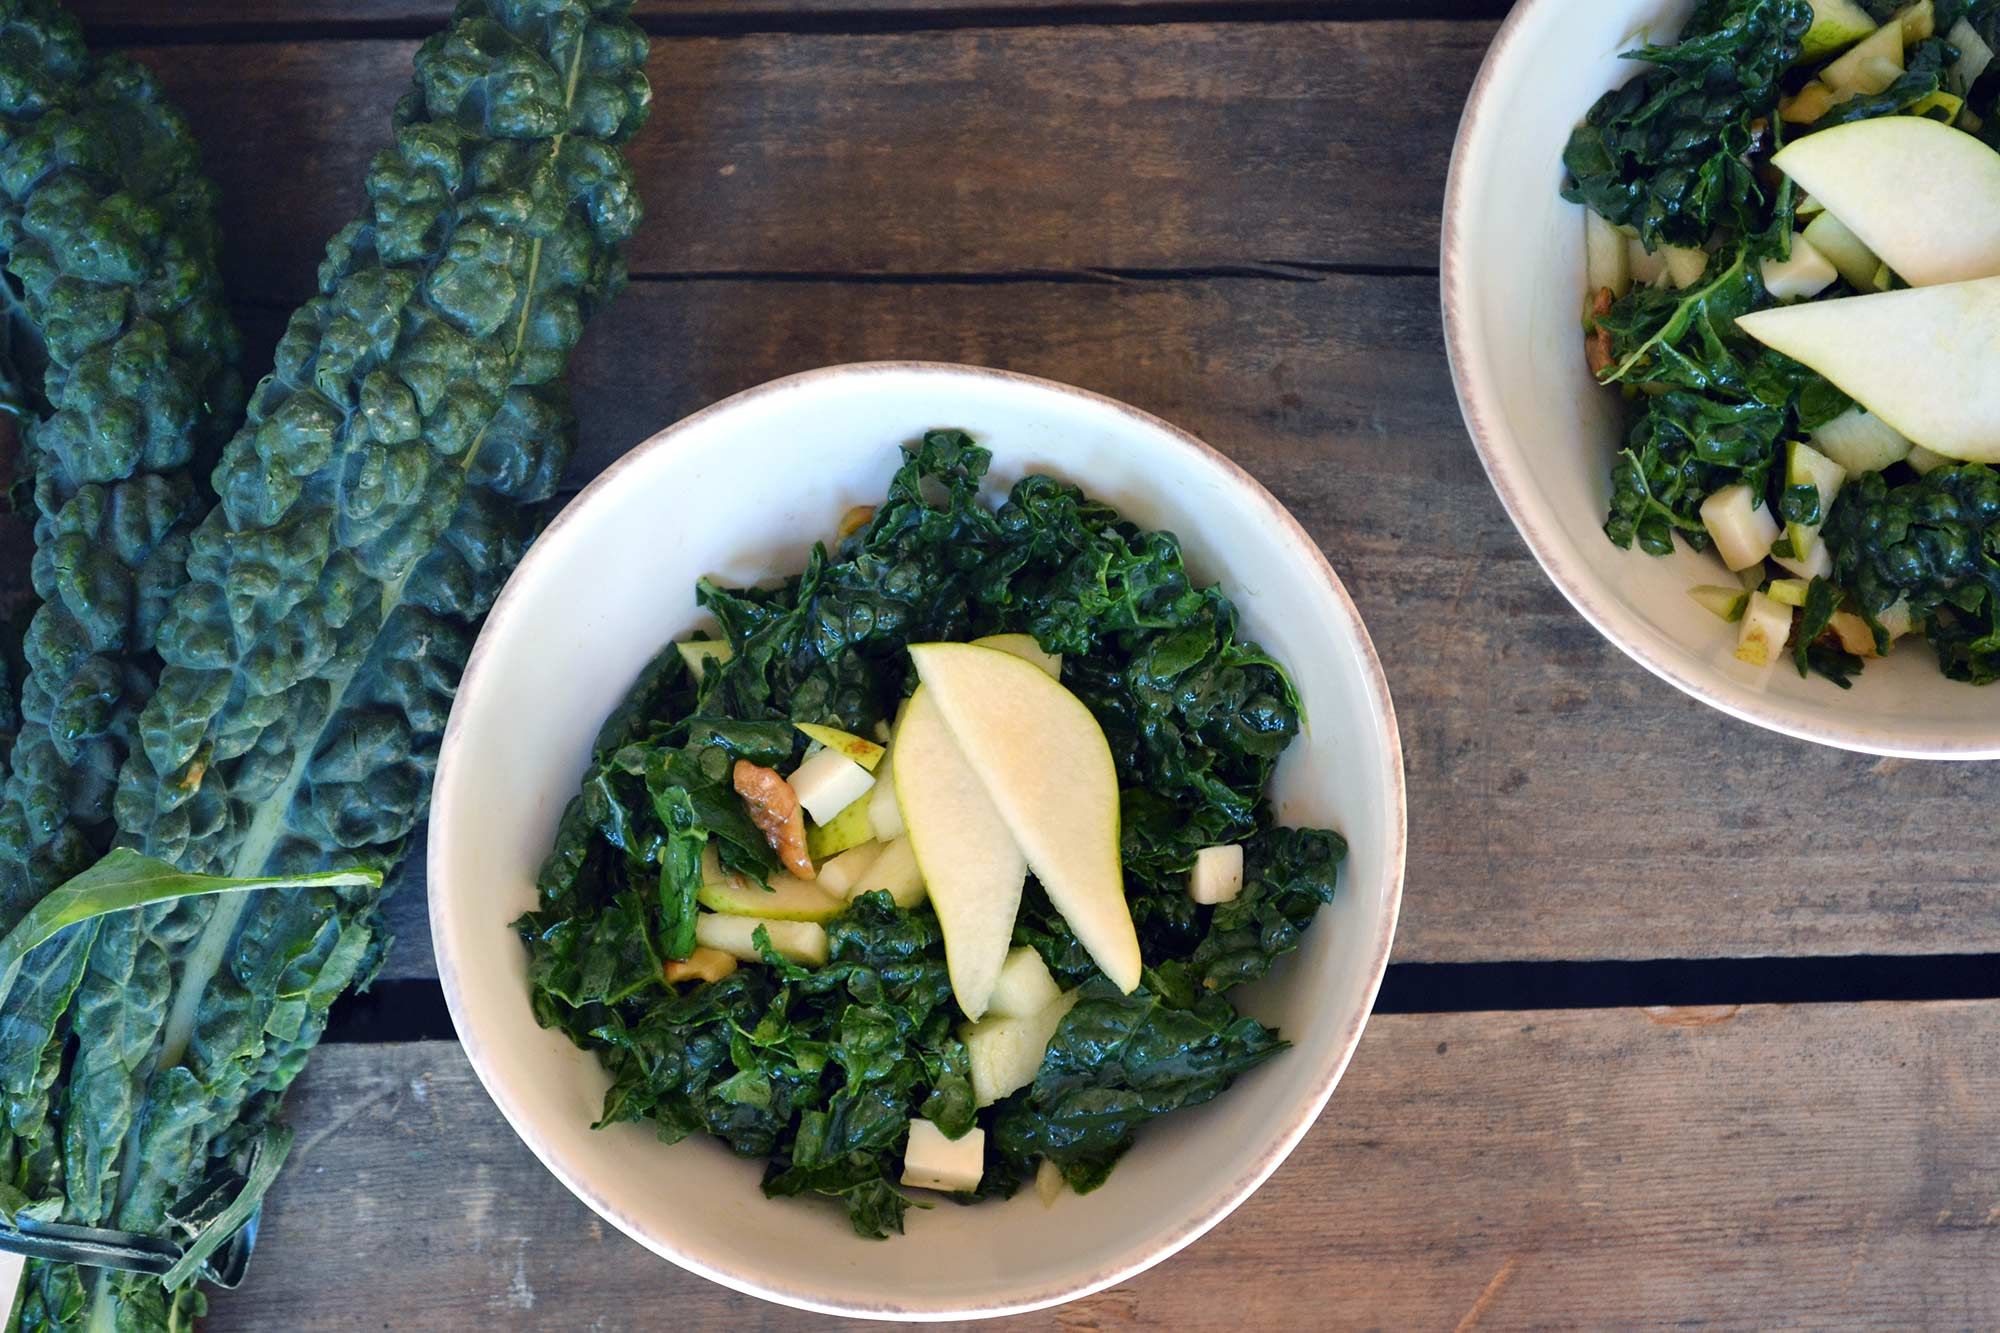 Kale Salad with Pears and Gouda